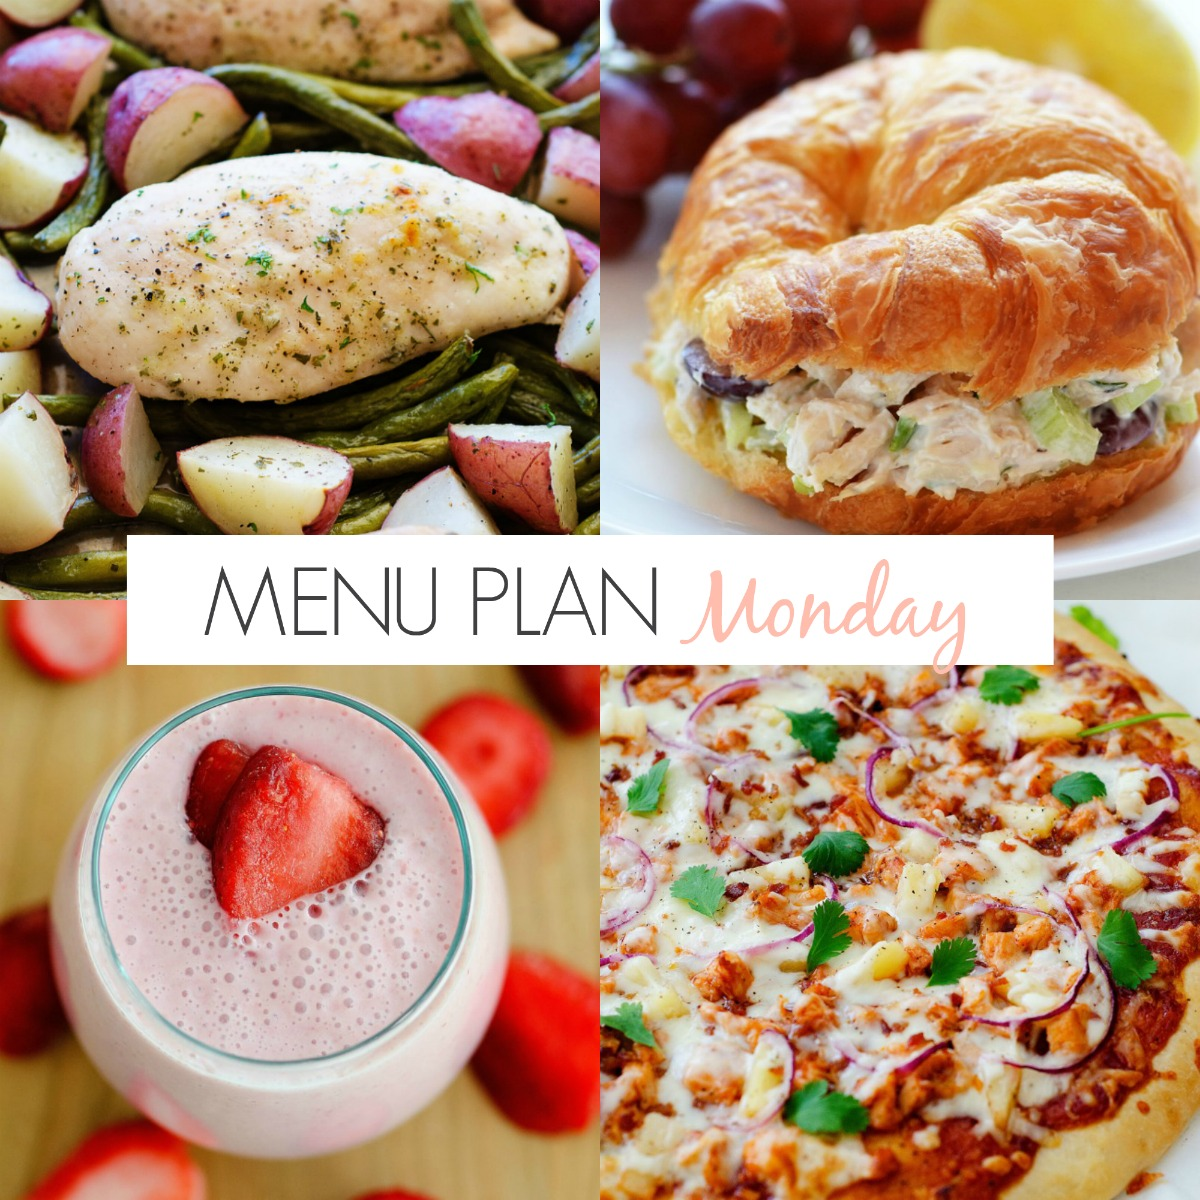 Menu Plan Monday #169 has lots of easy and yummy recipes your family will love!